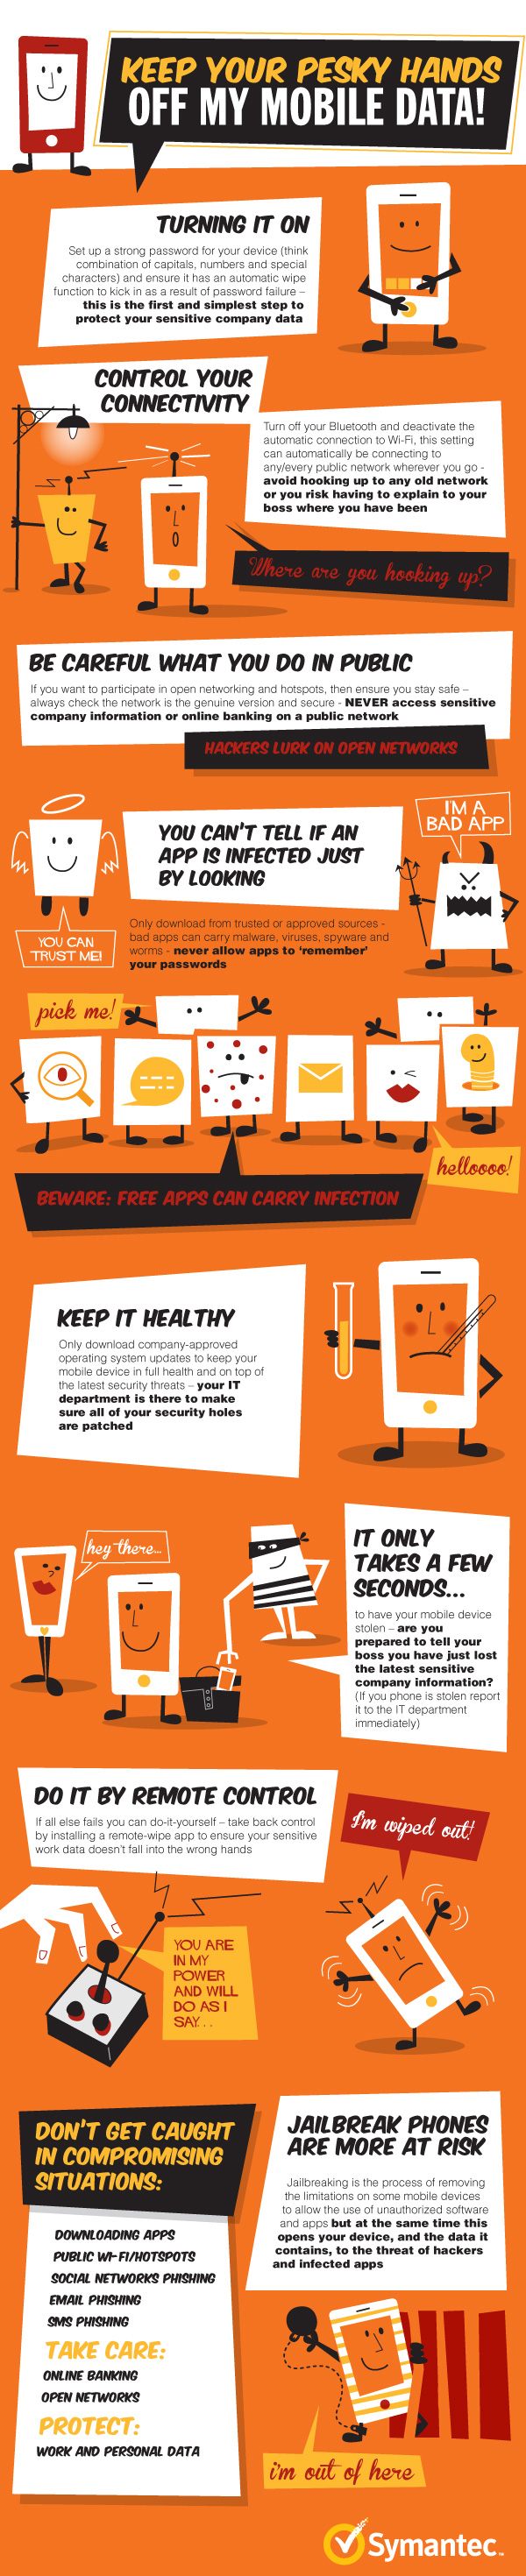 How to Keep Your Smartphone Safe & Secure